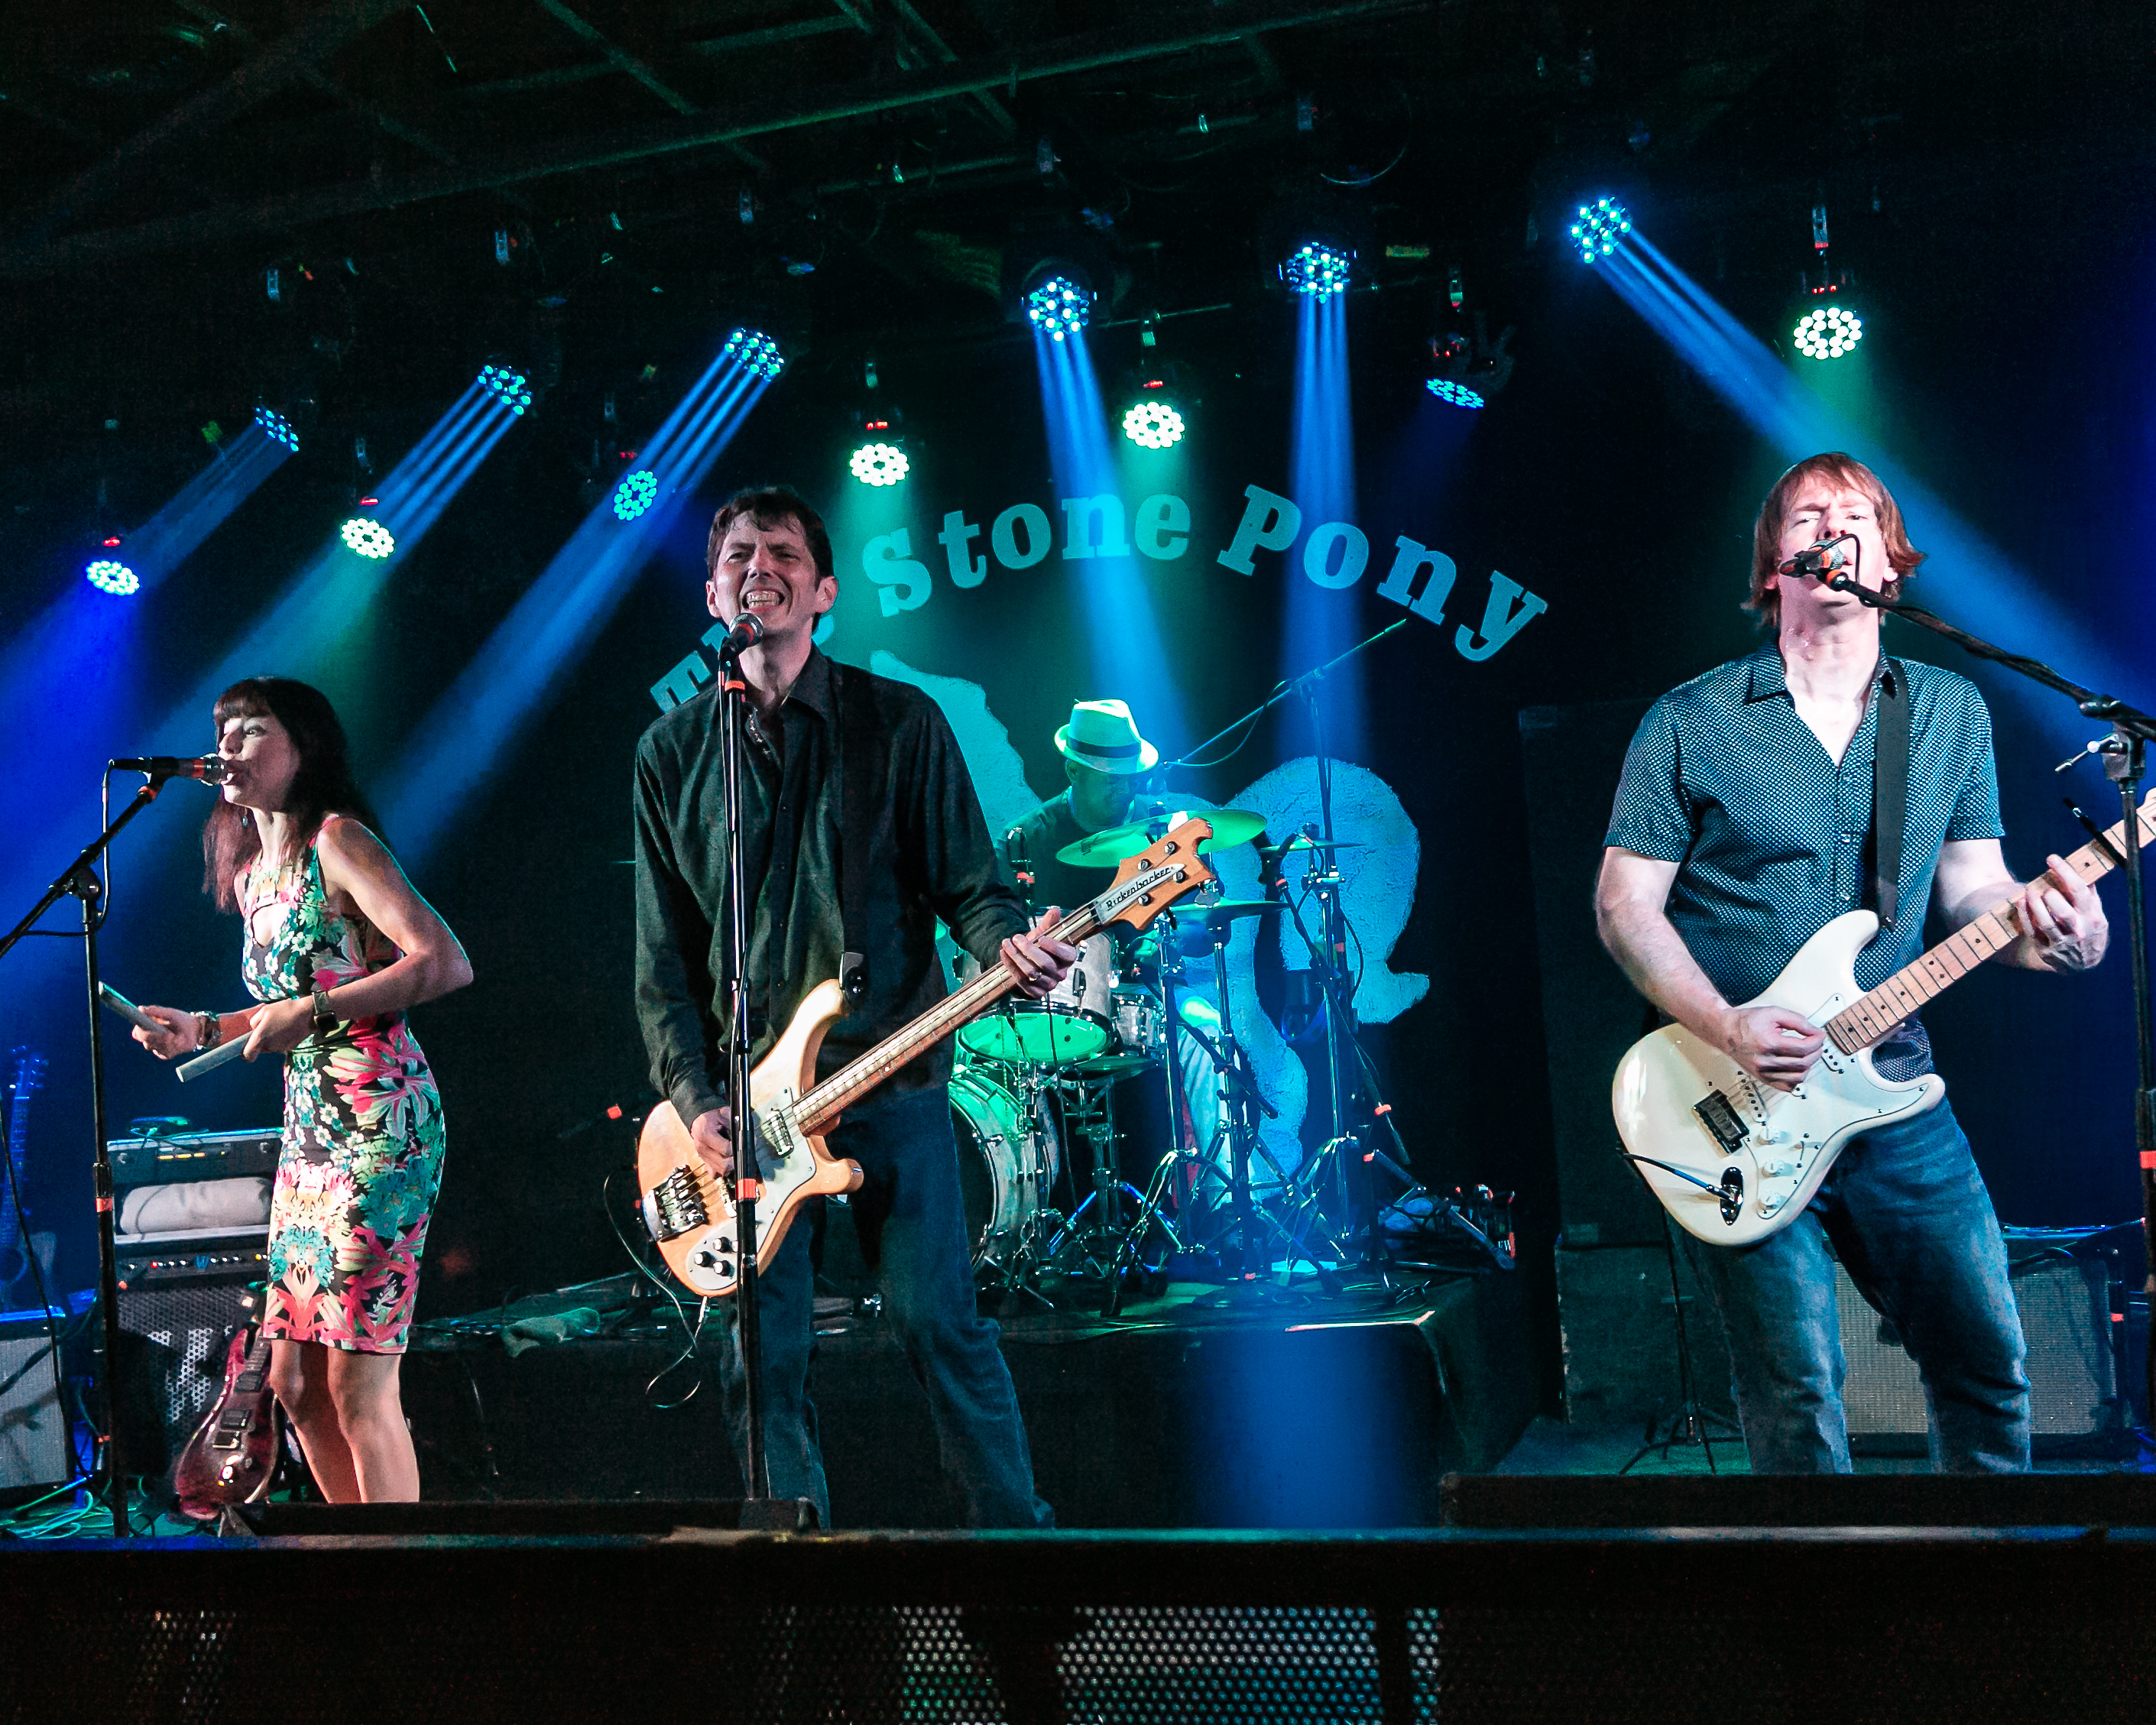 The Wag at the Stone Pony